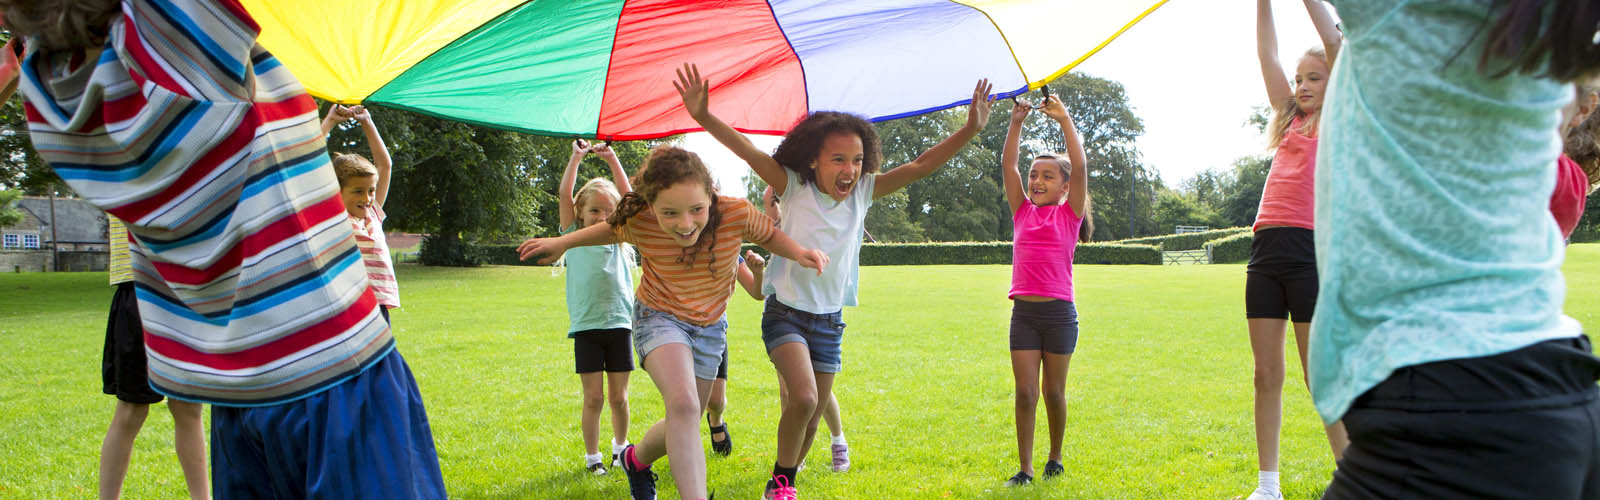 Children playing with parachute at camp